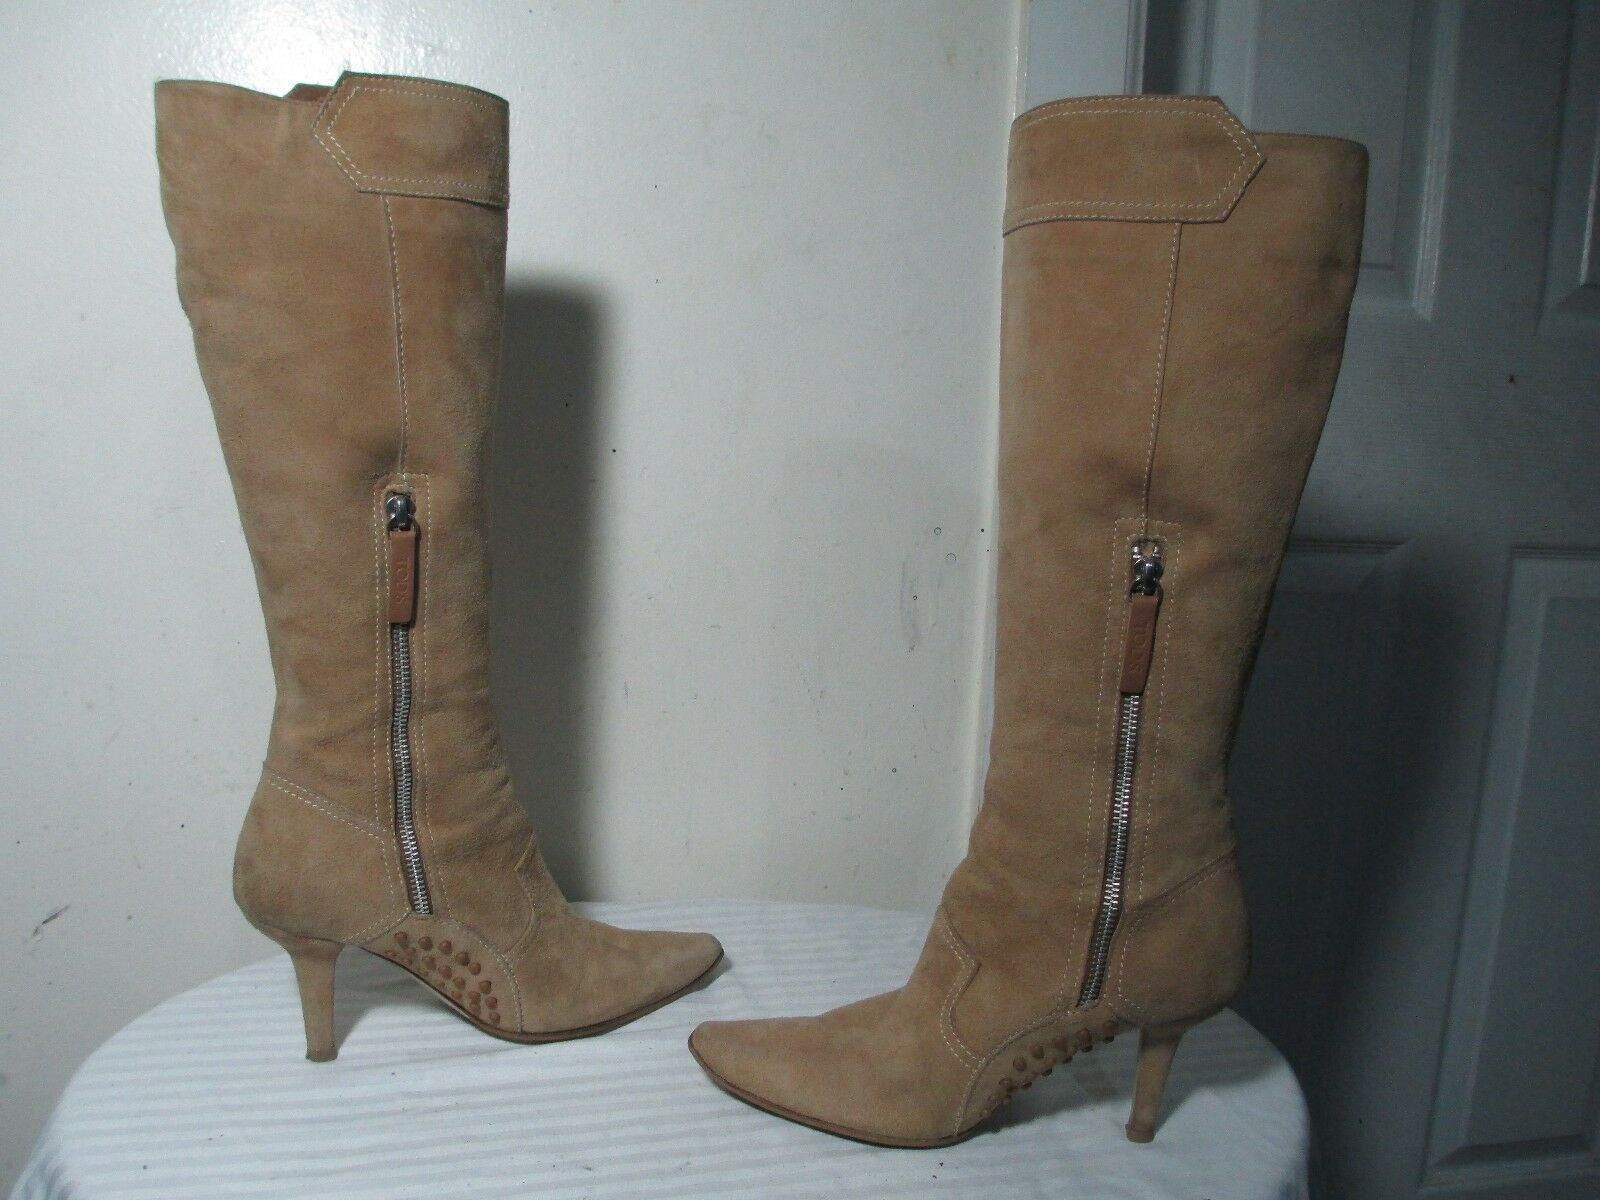 TOD'S WOMEN TAN SUEDE 'T' LOGO BUTTON DETAIL SIDE ZIP KNEE HIGH BOOTS 36 US 5.5